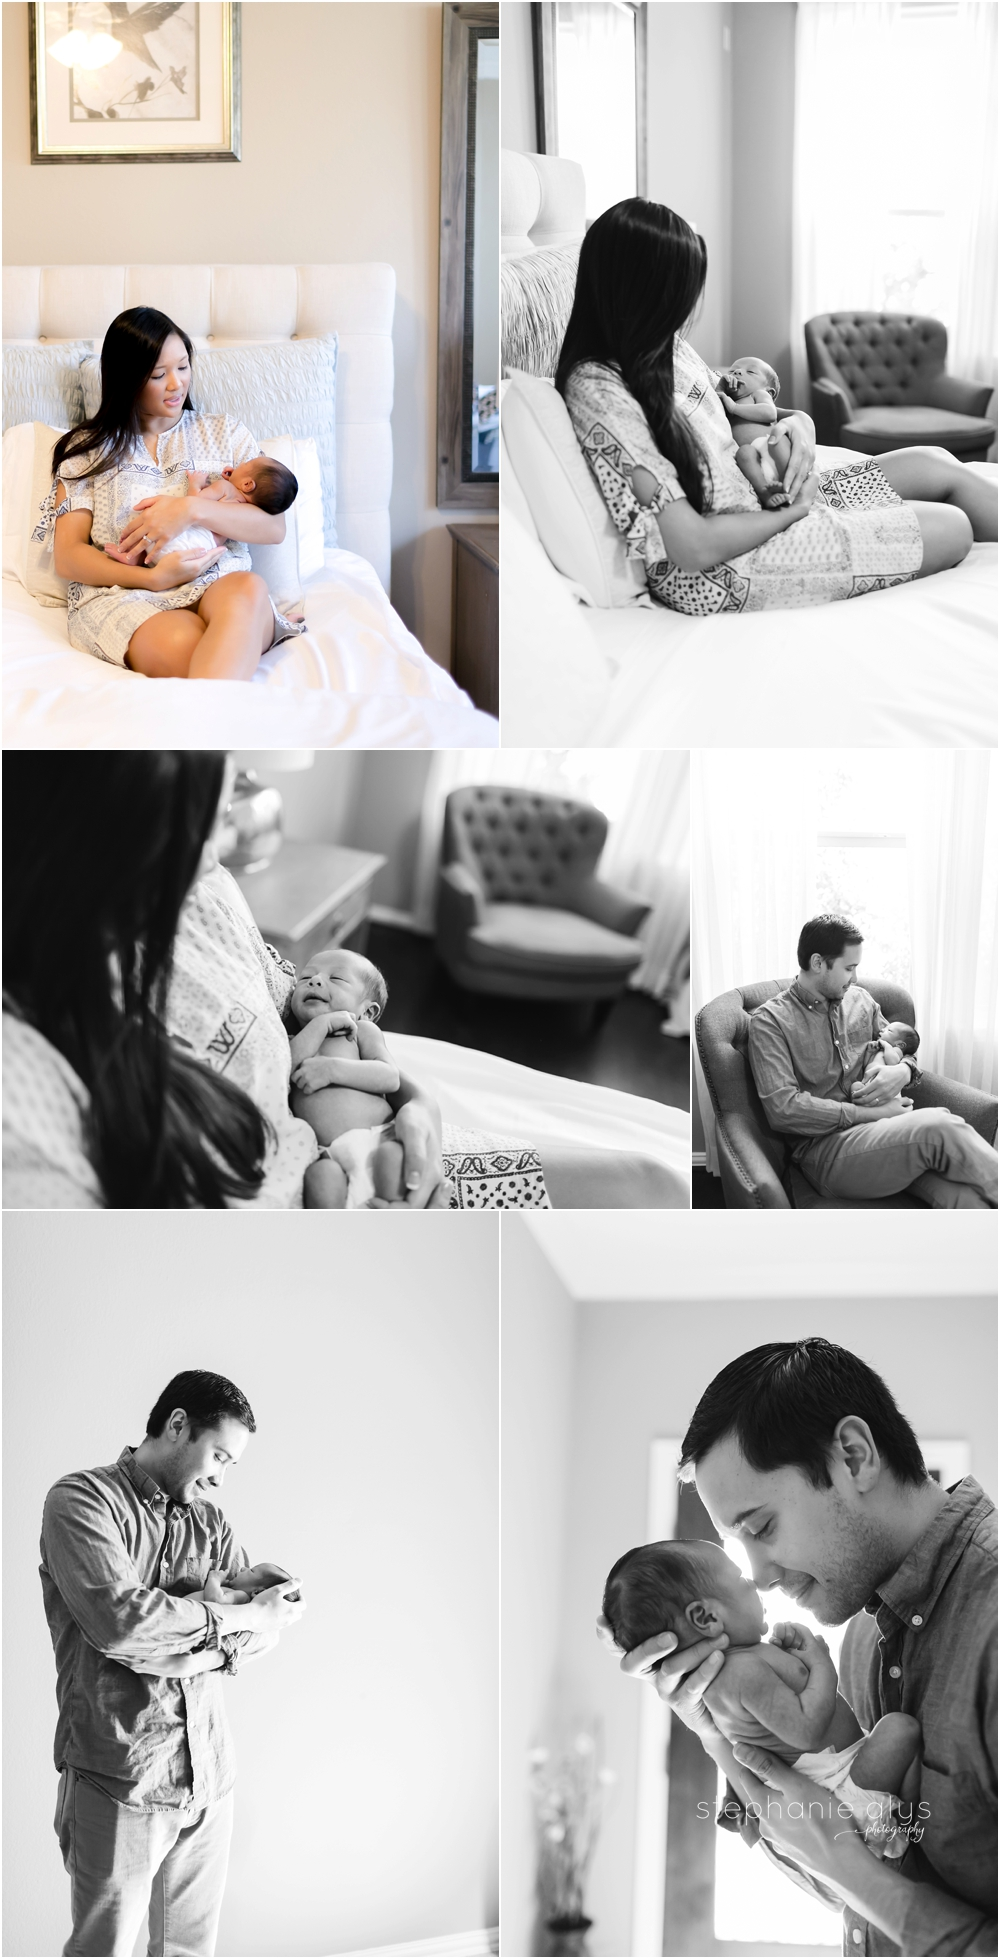 © 2015 Stephanie Alys Photography | Emerson • Cypress, Texas Newborn Photographer